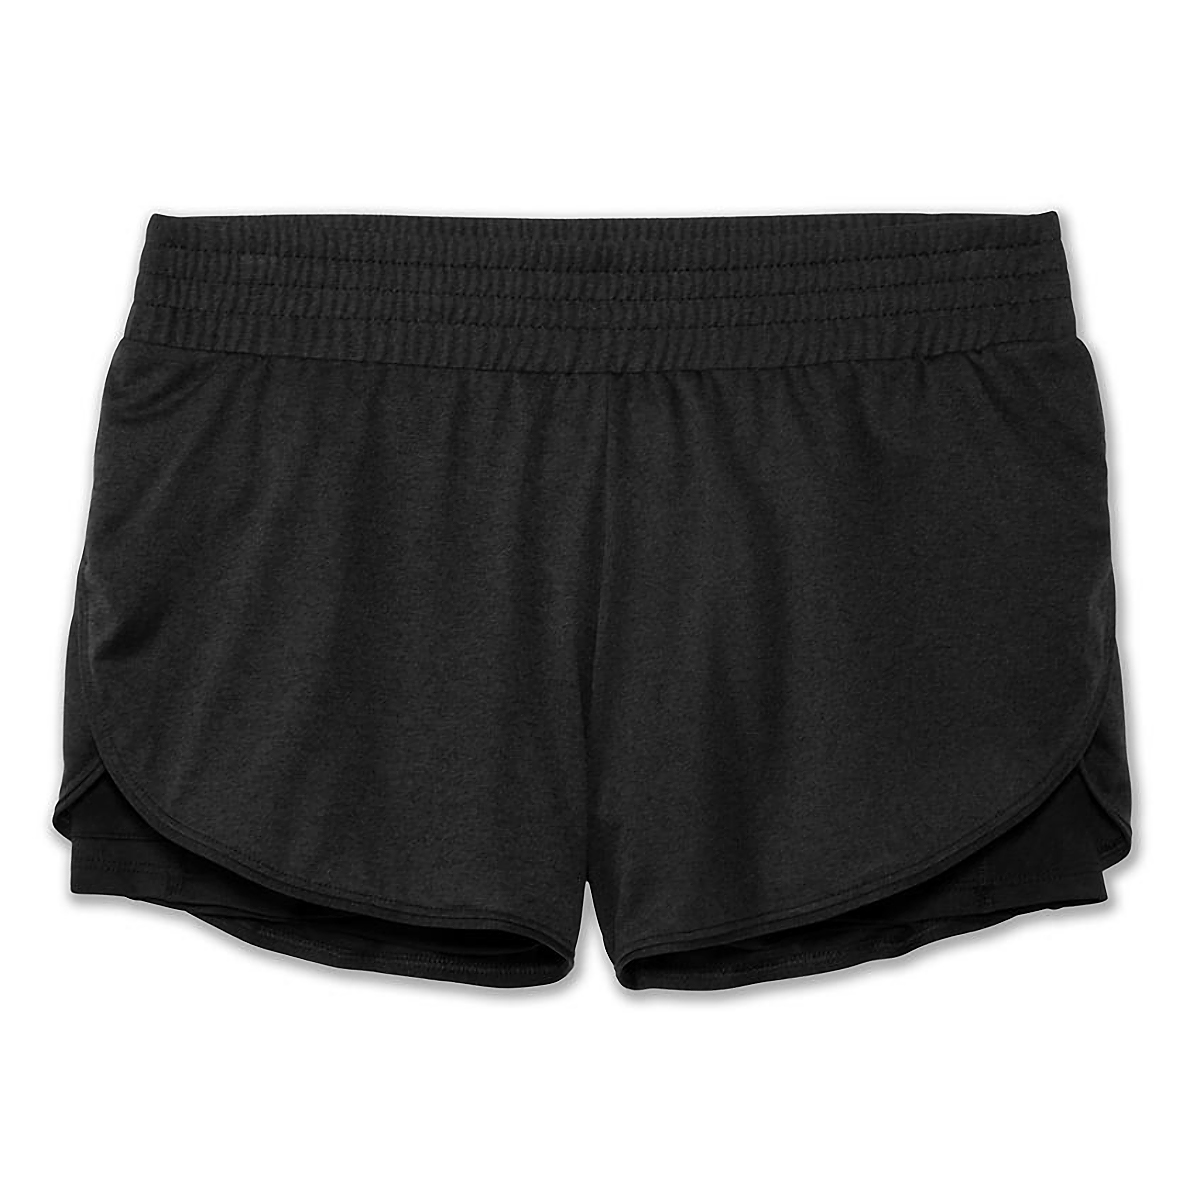 "Women's Brooks Rep 3"" 2-In-1 Short - Color: Black - Size: XS, Black, large, image 2"